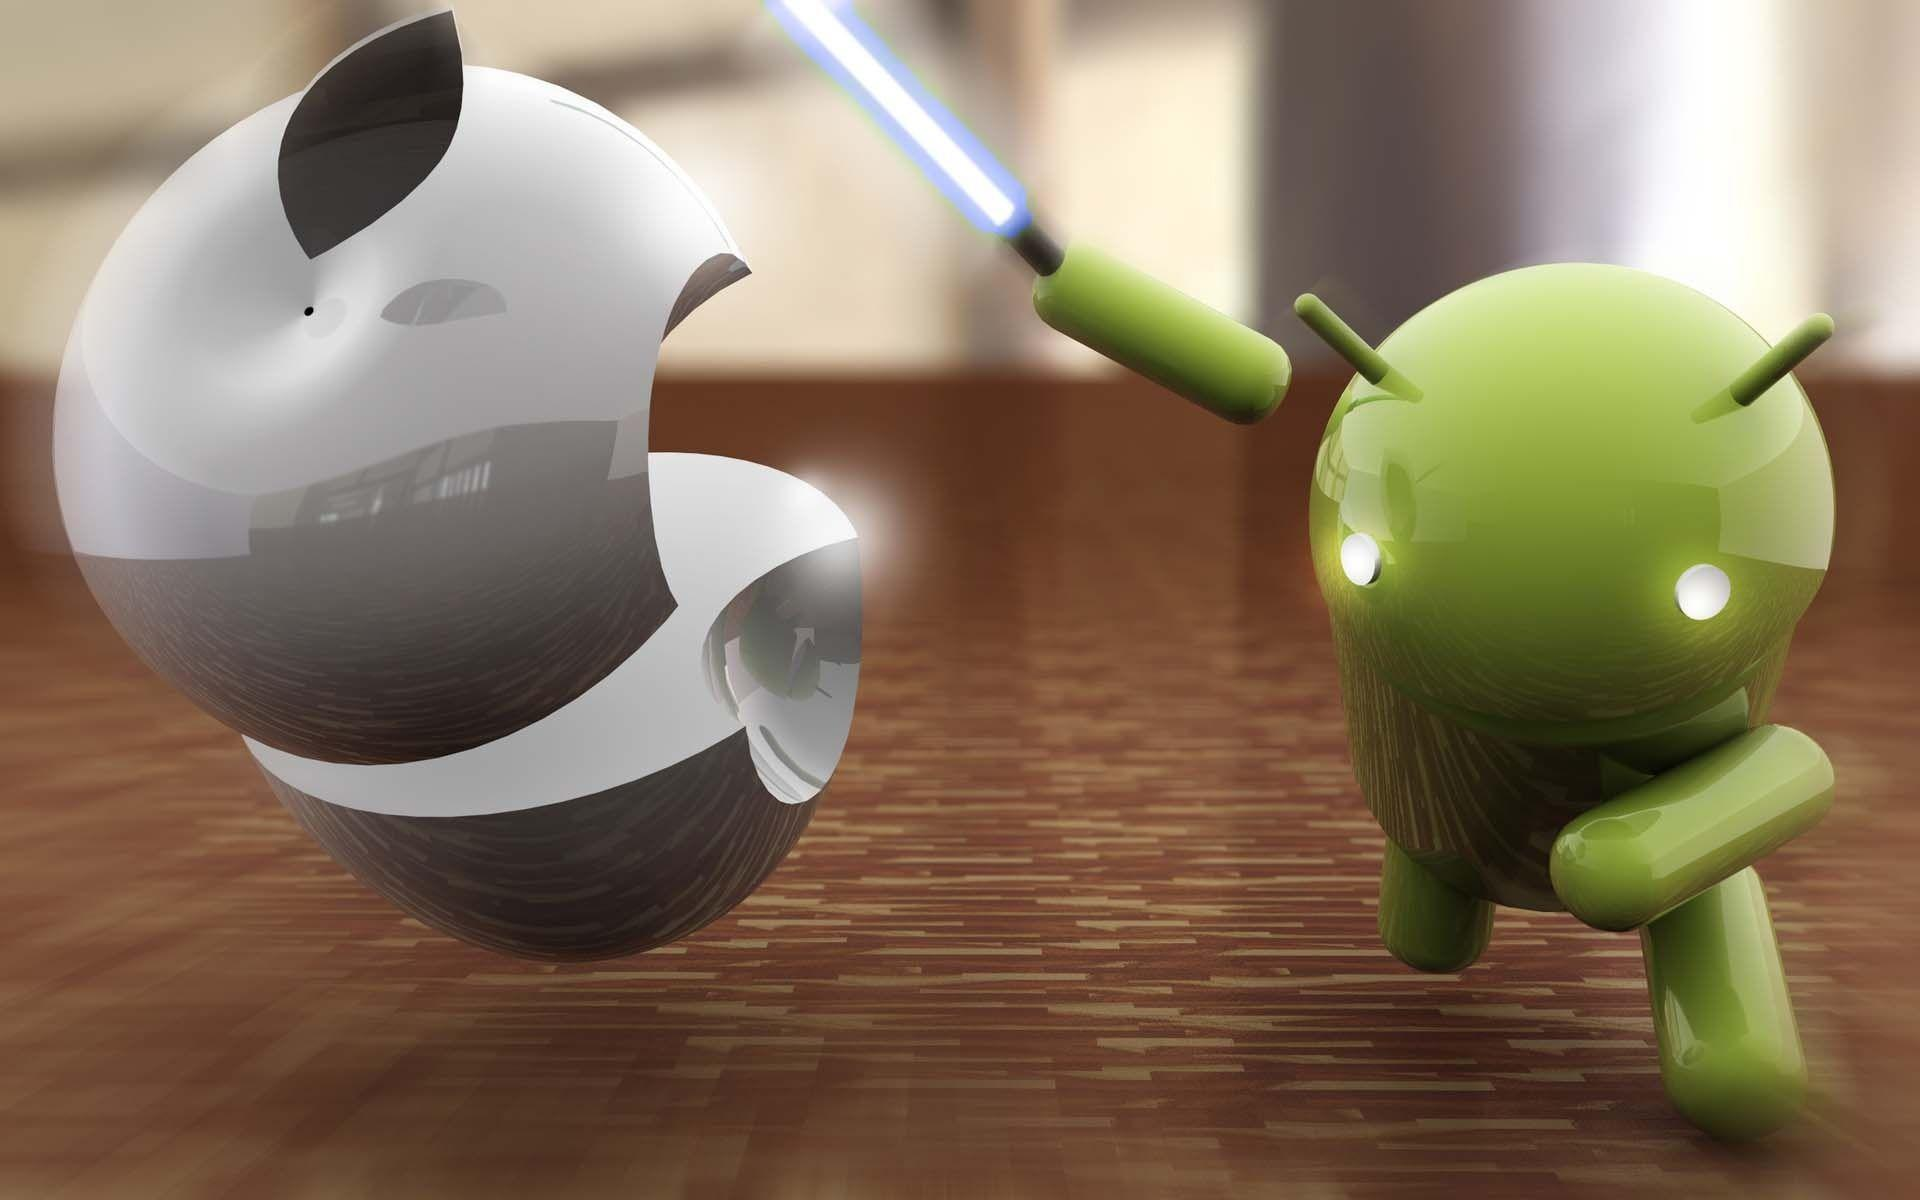 android vs apple wallpapers full hd wallpaper search